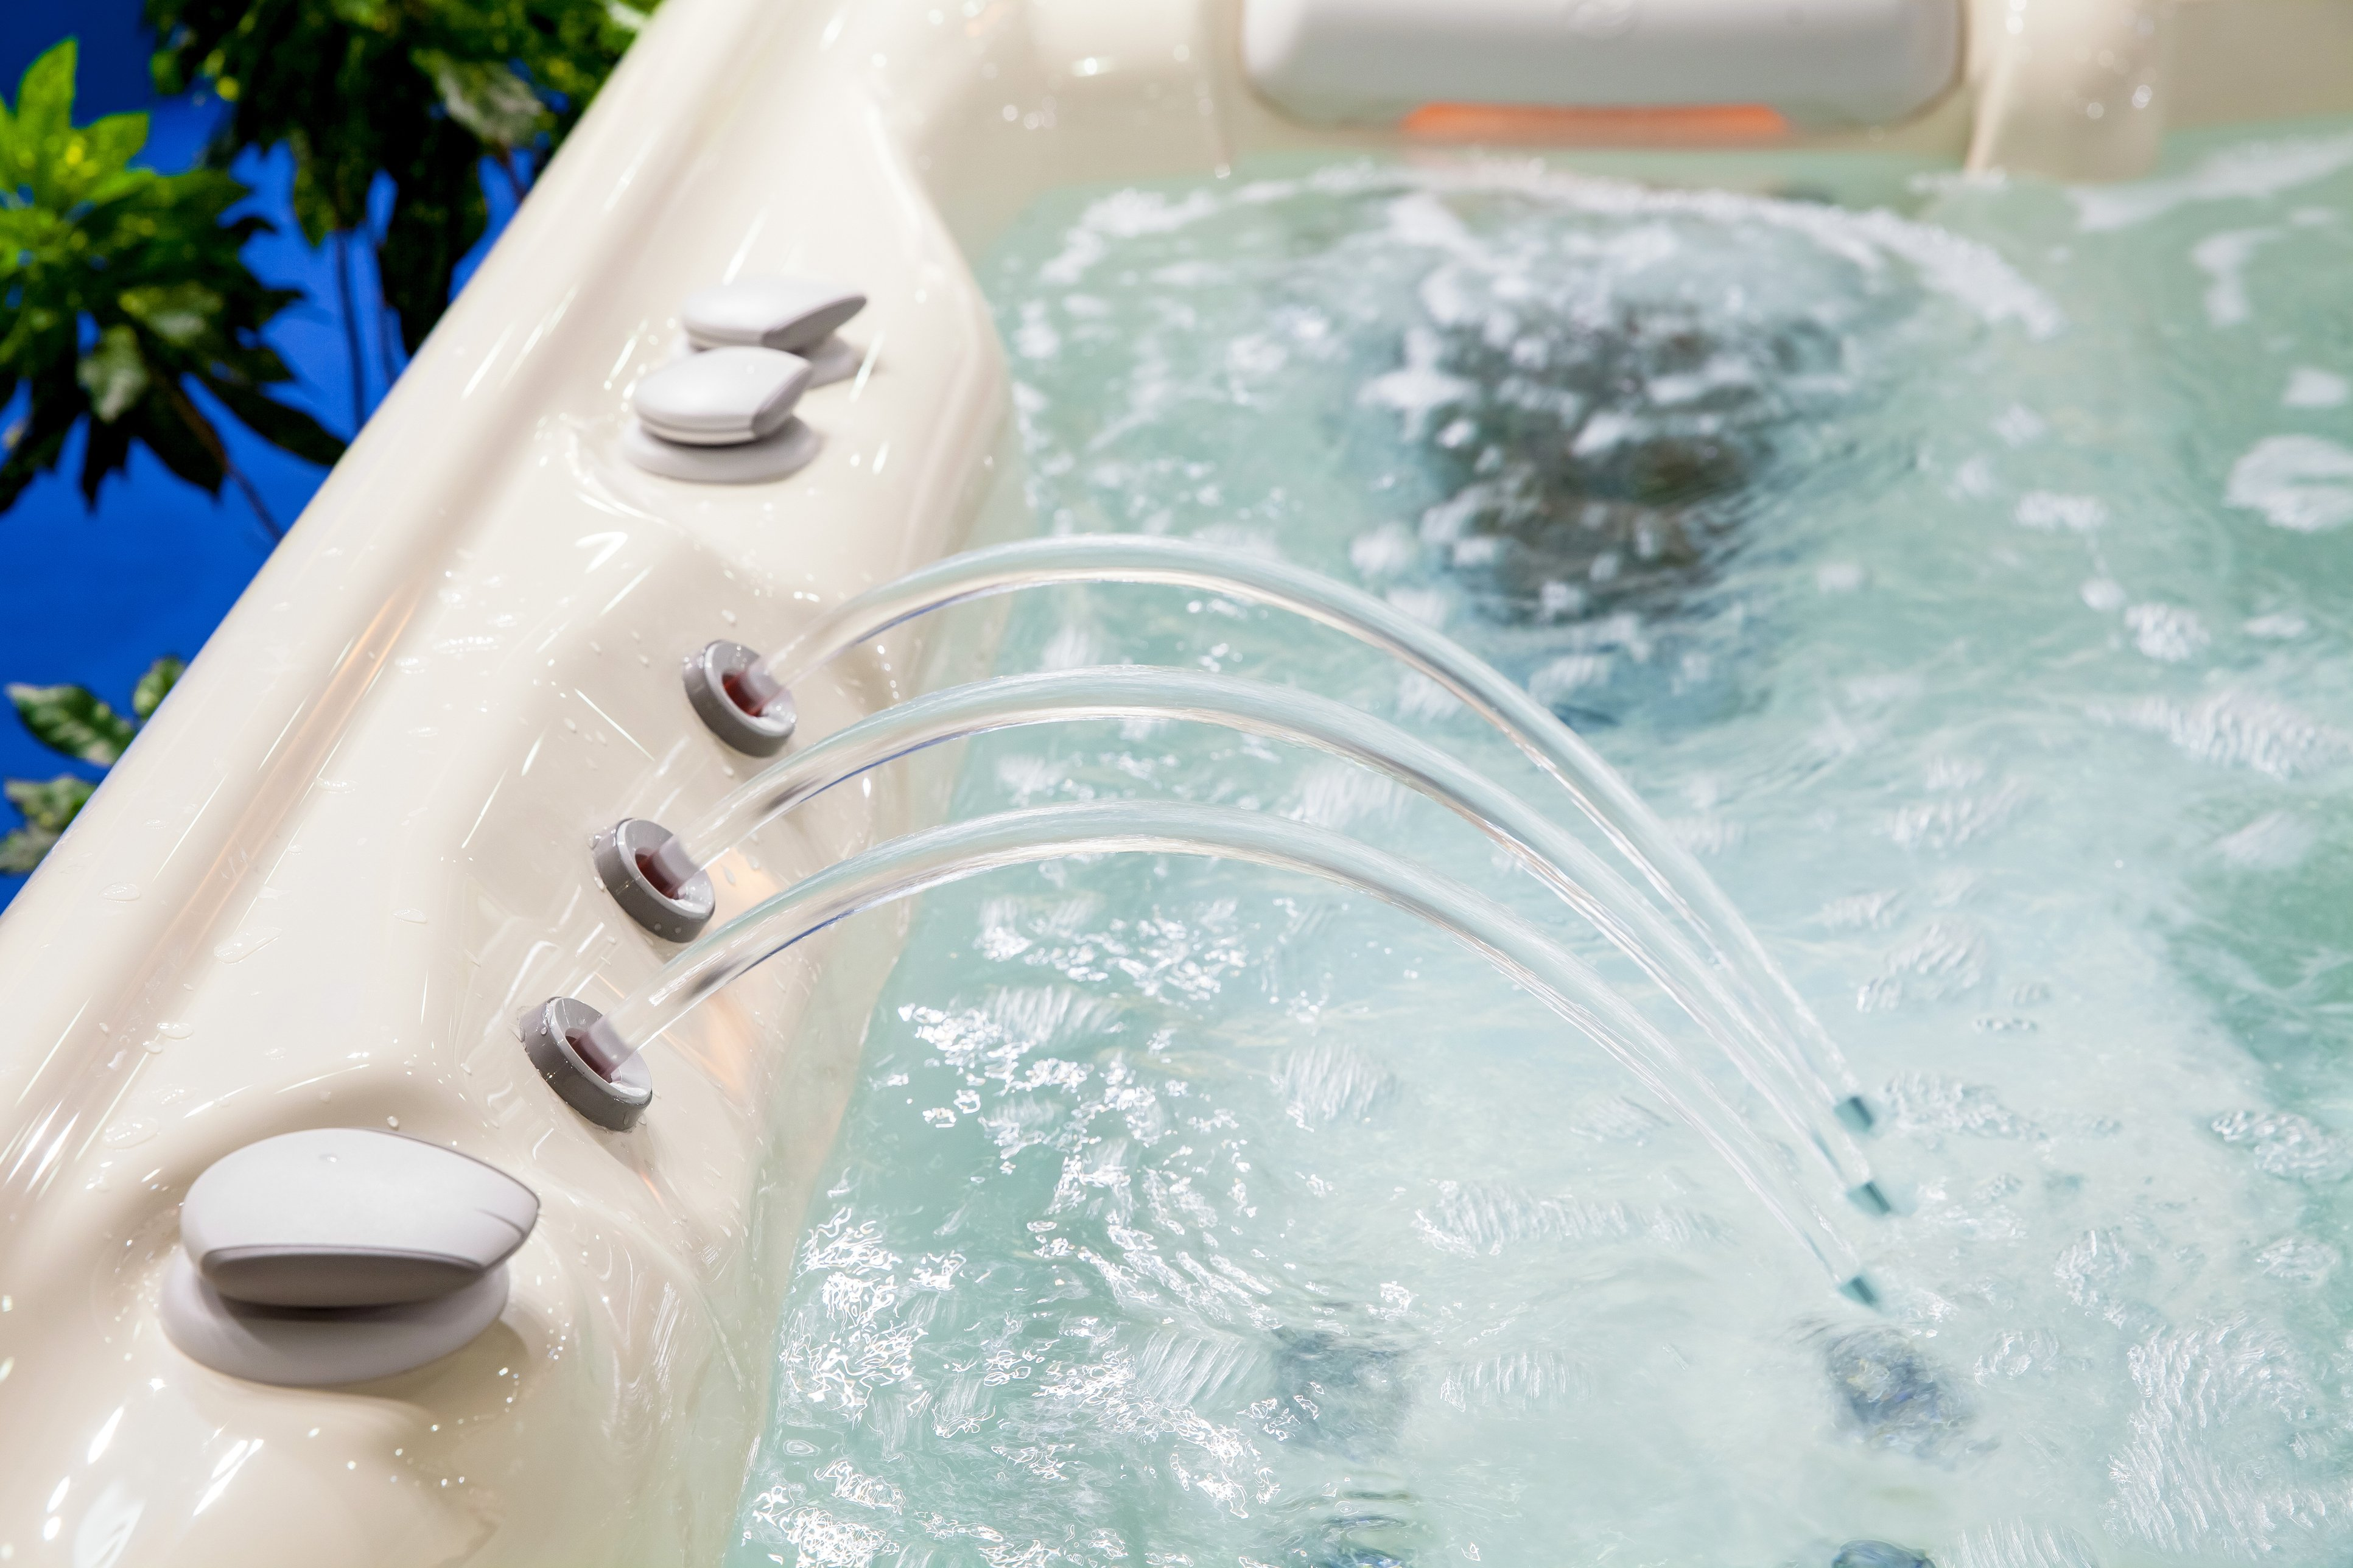 tacoma fort great image tub the series product products magnify spas escape sundance hot info wayne tubs